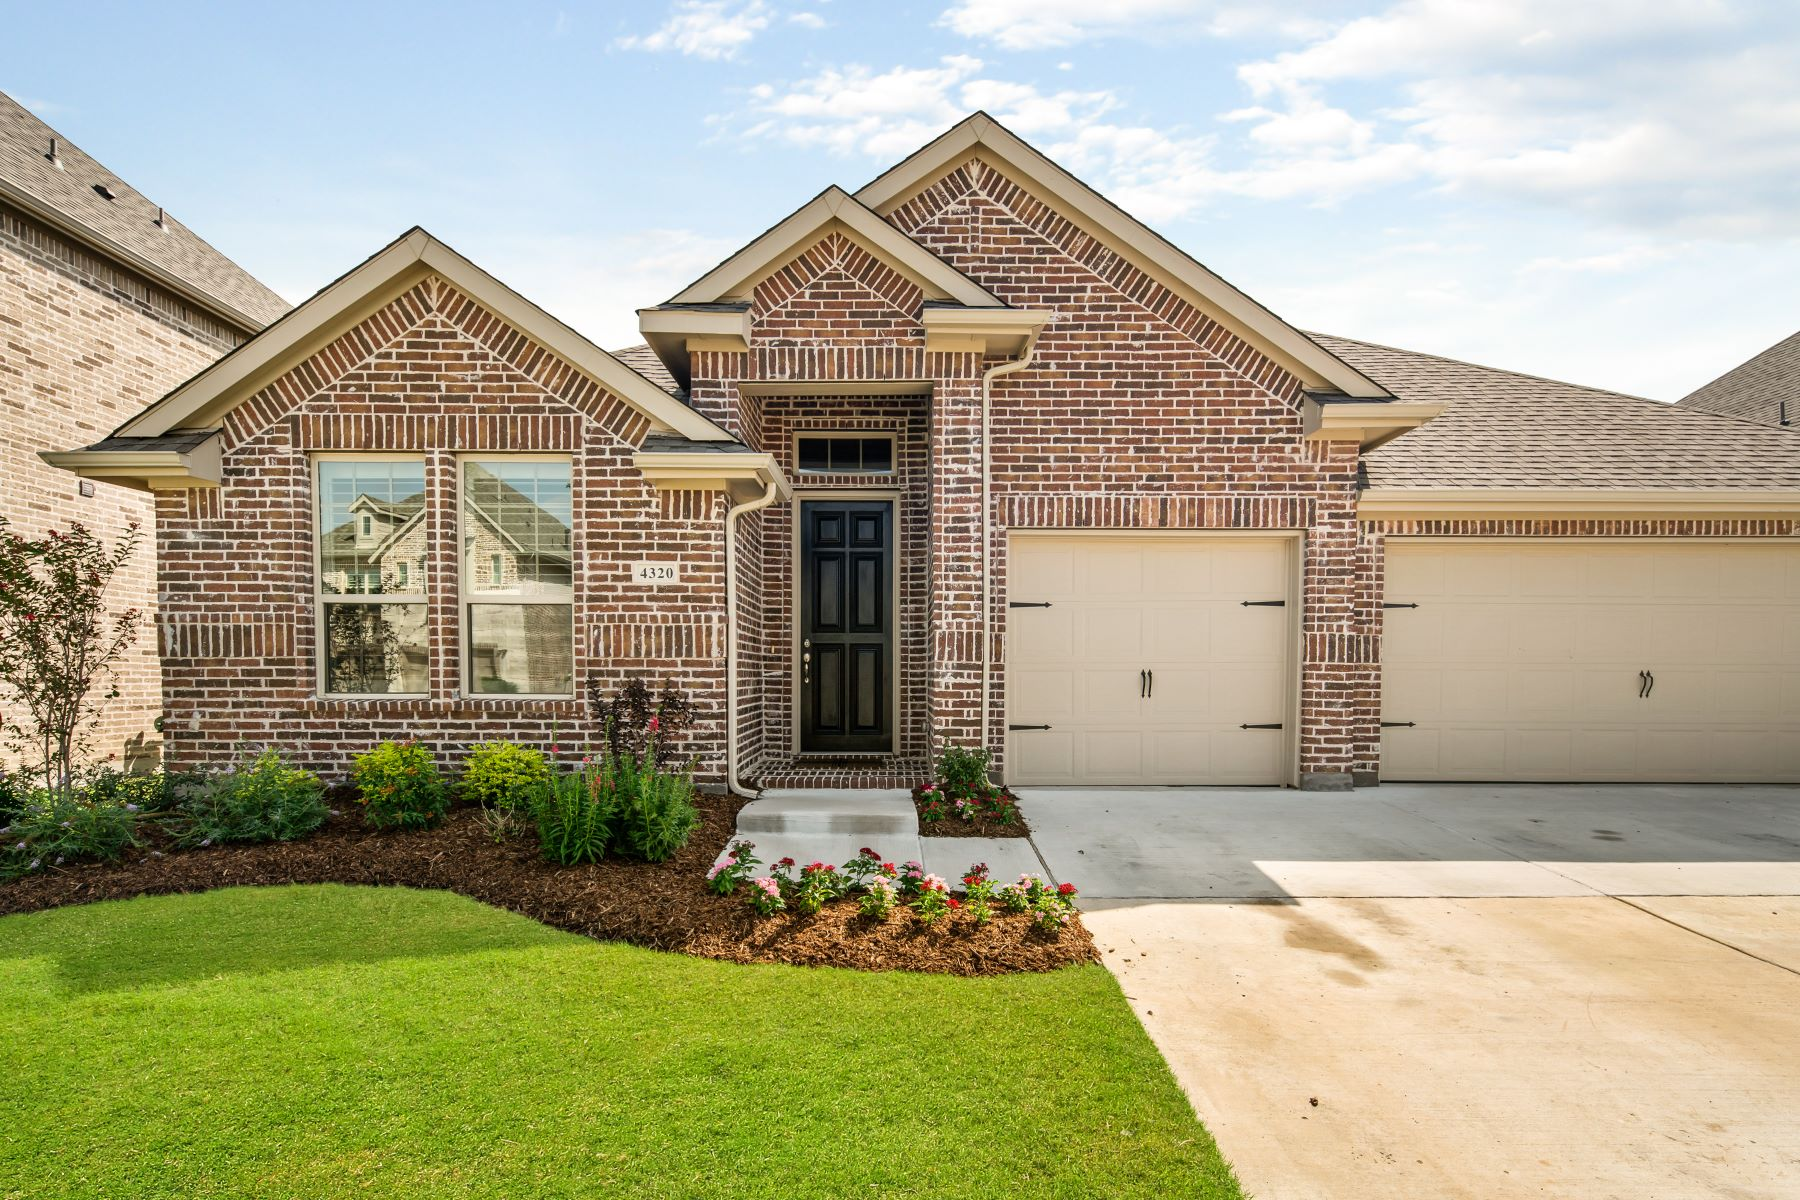 Single Family Homes for Sale at Lifestyle in Light Farms ! 4320 Switchgrass Street Celina, Texas 75009 United States